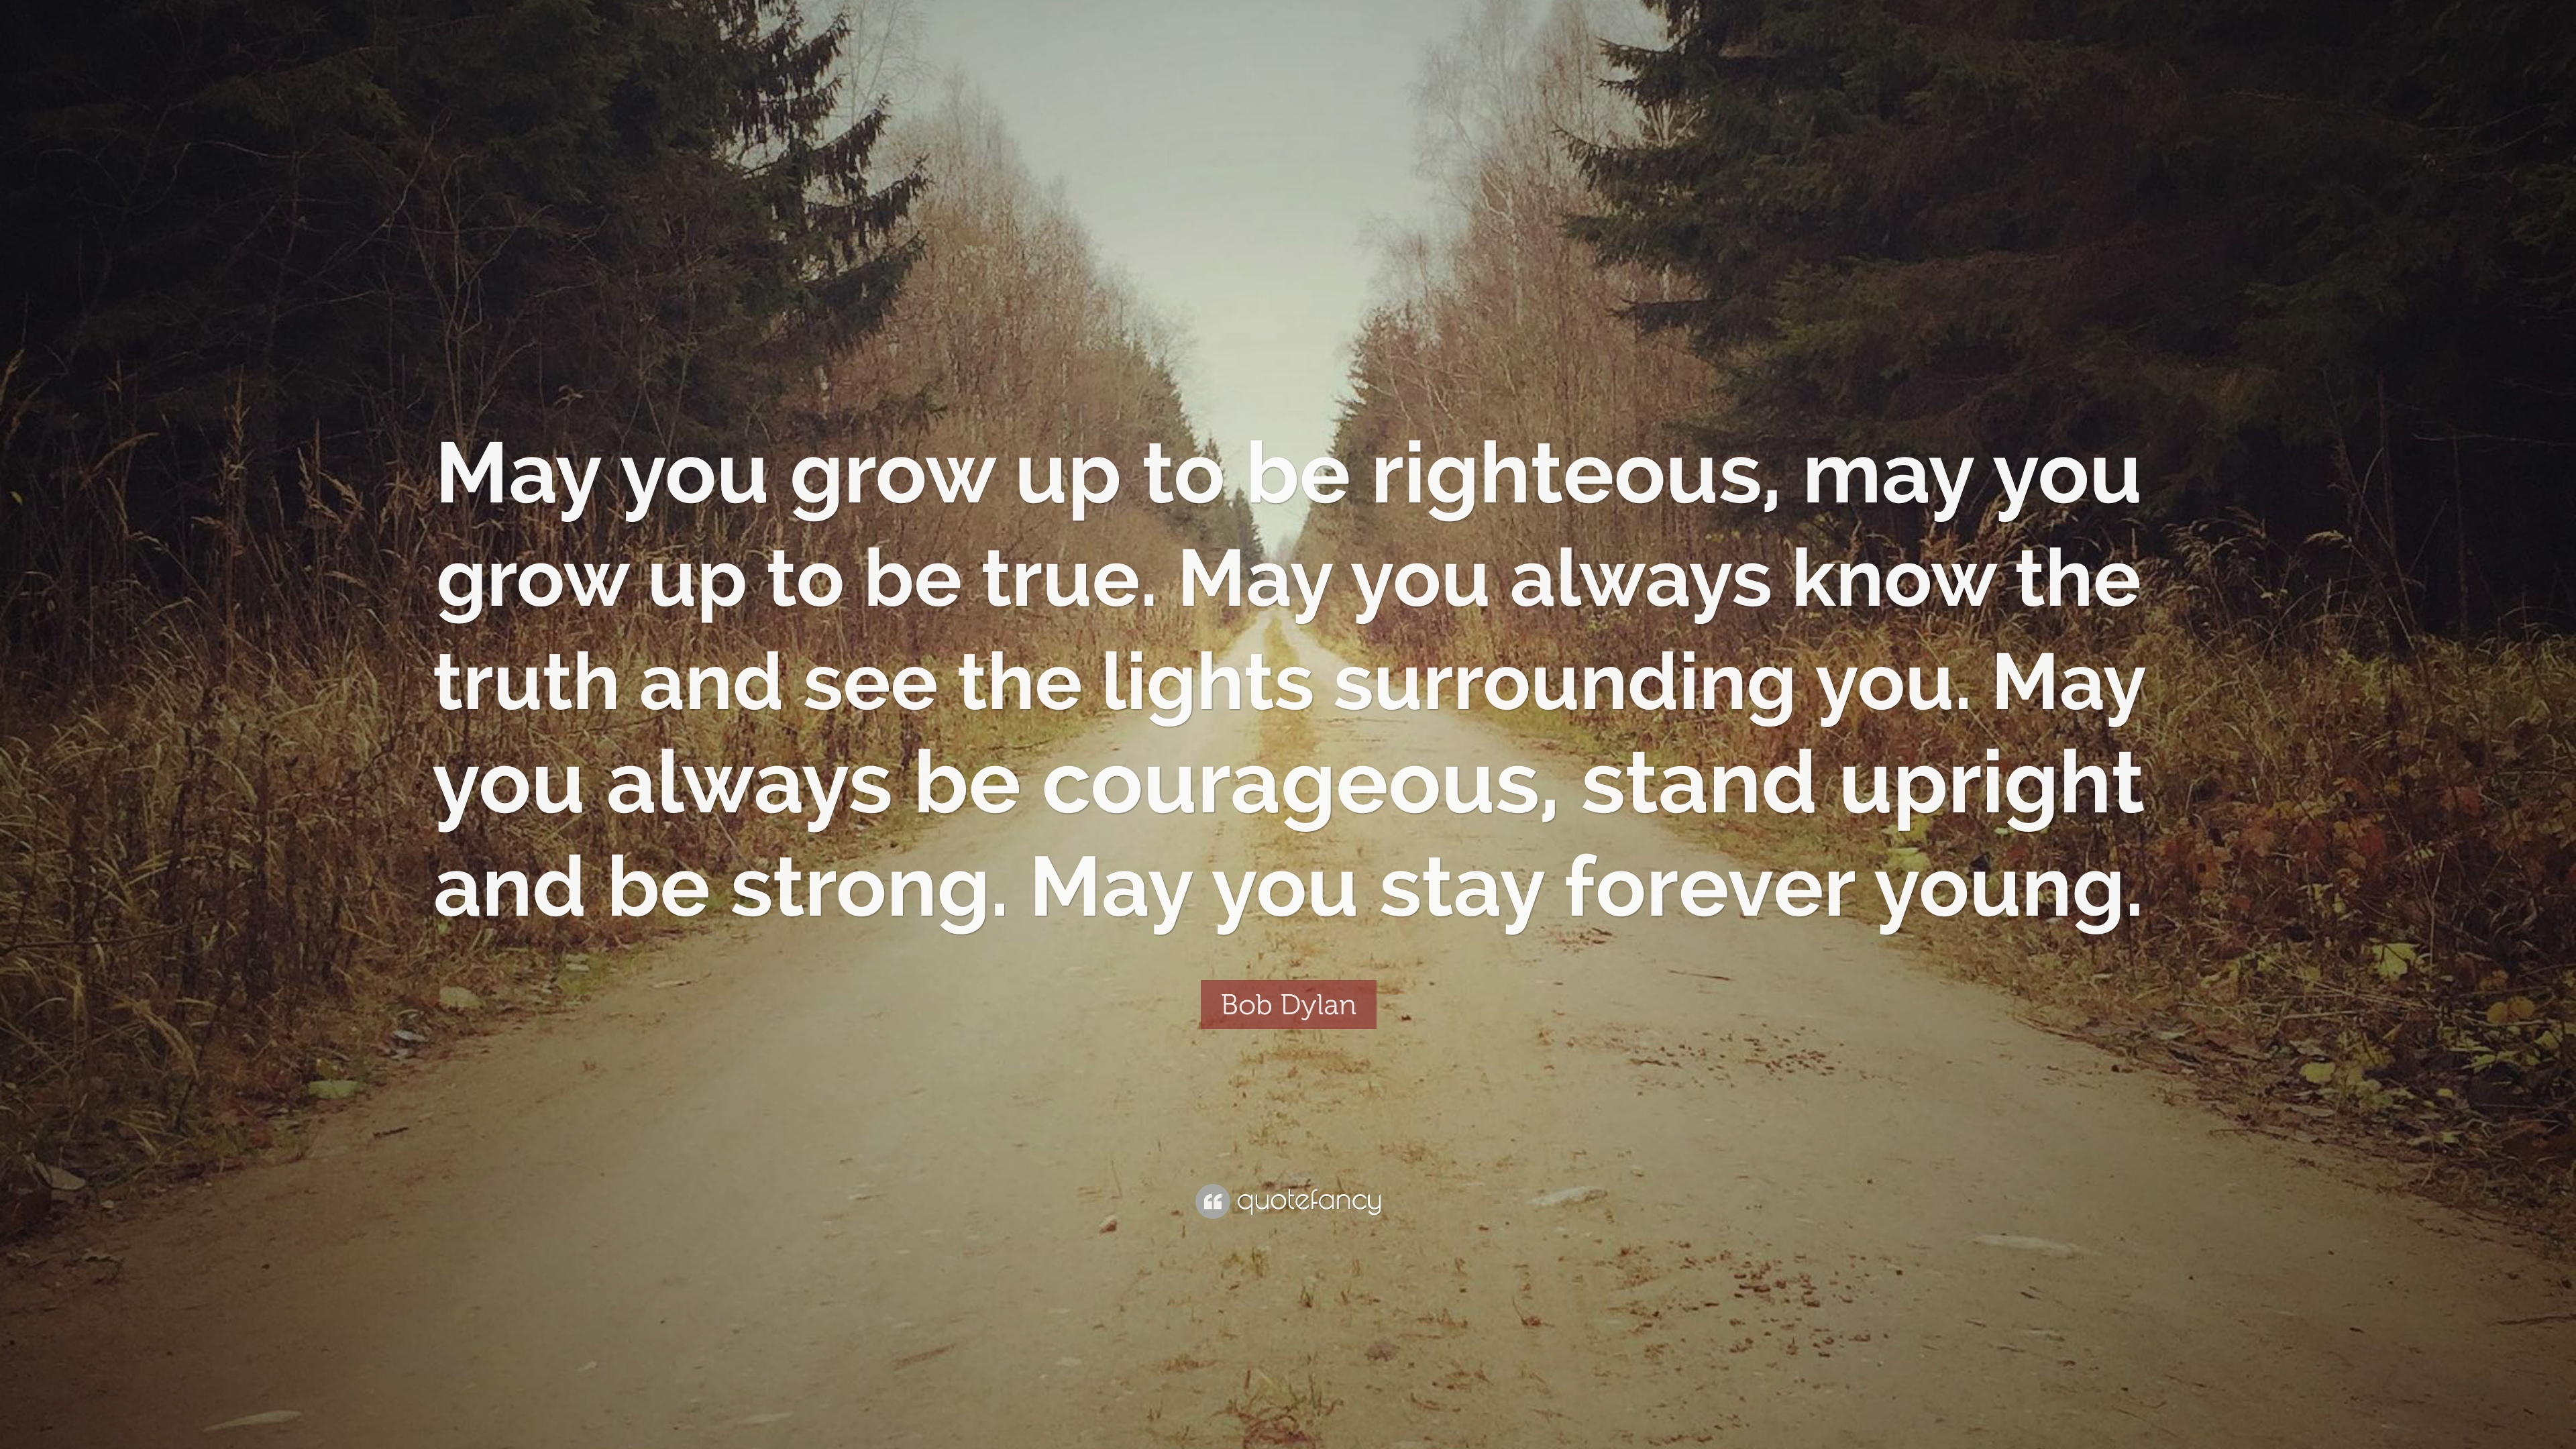 Bob Dylan Quotes Wallpapers Bob Dylan Quote May You Grow Up To Be Righteous May You